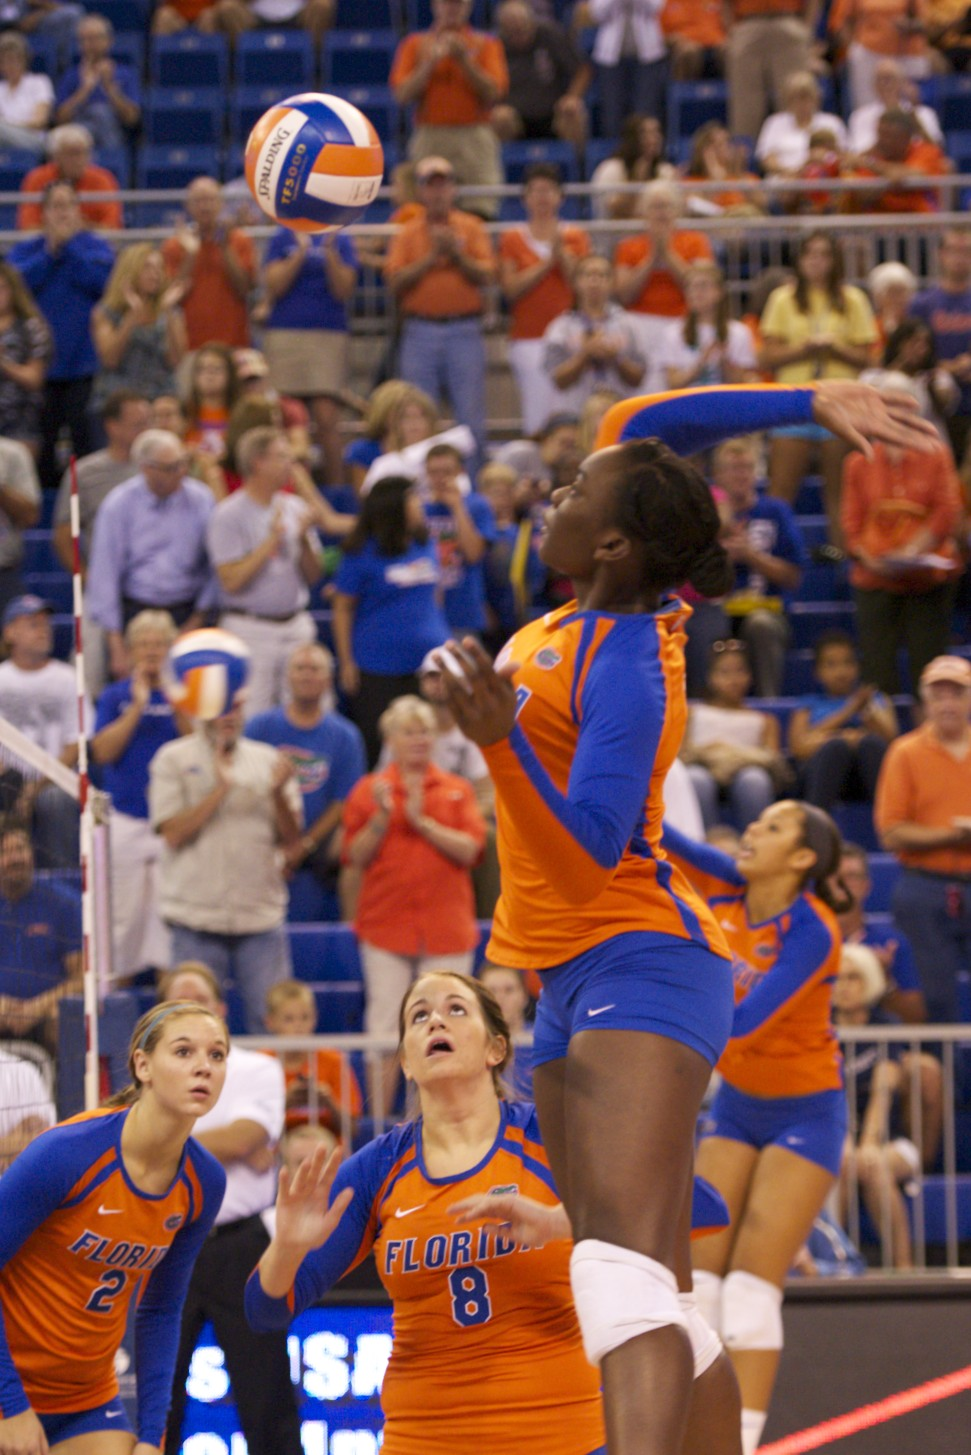 Freshman Simone Antwi had 6 kills in the match against Florida Gulf Coast Saturday evening.